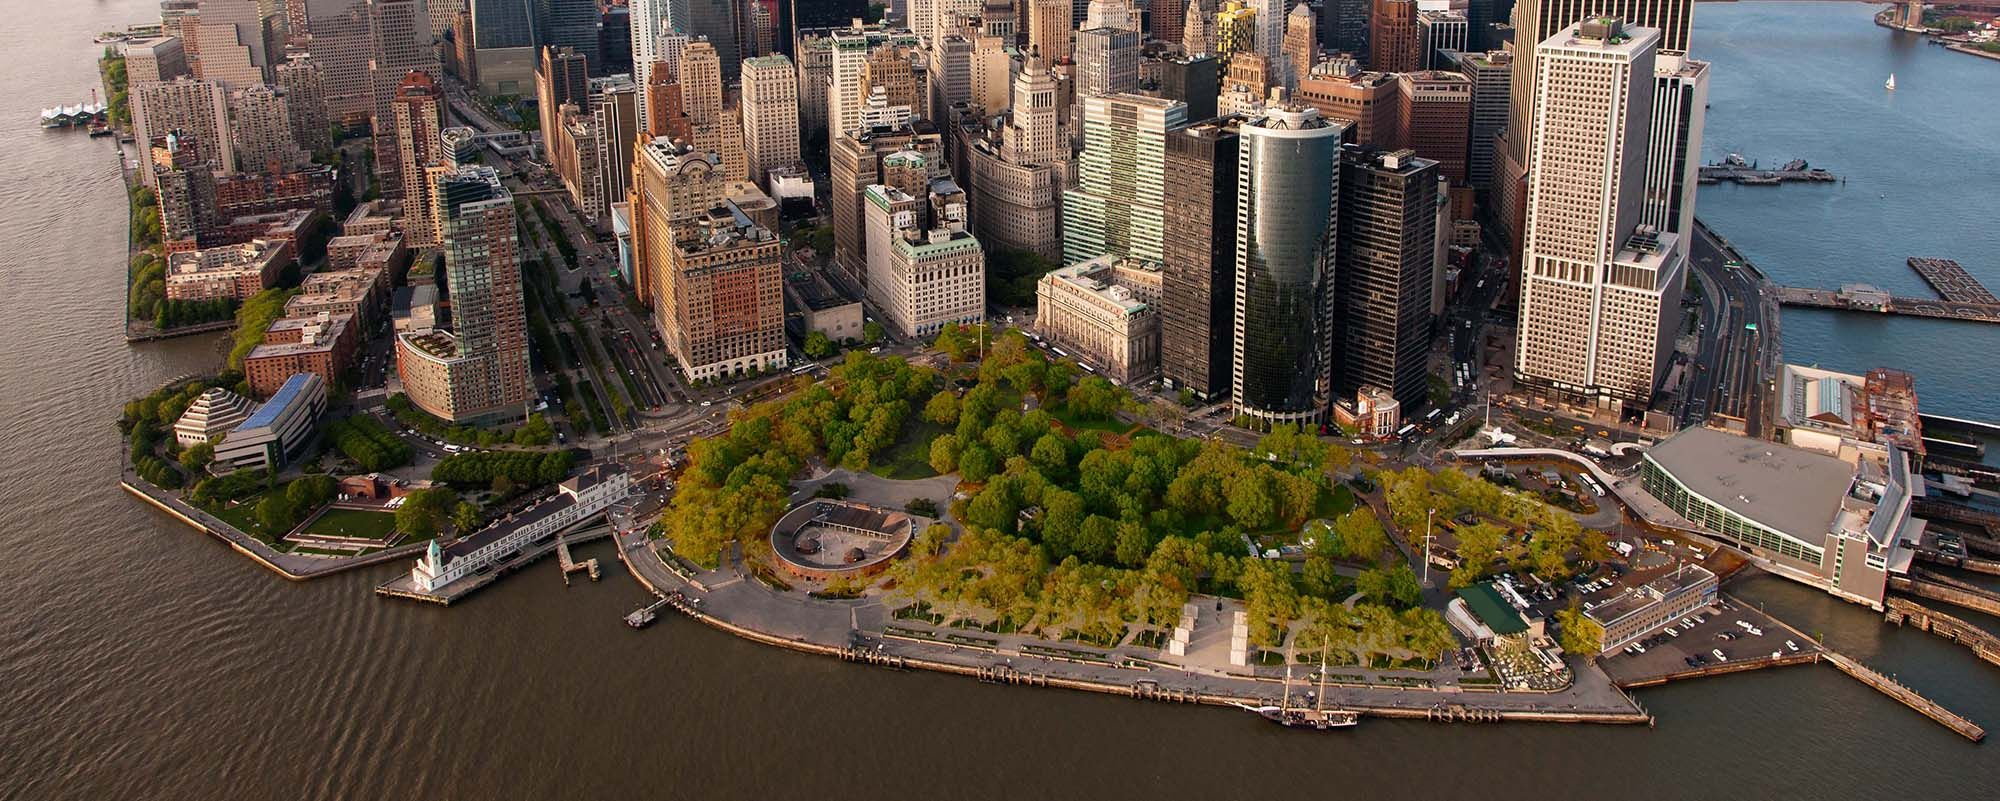 Battery Park in NYC, gardens designed by Piet Oudolf | Plants ...